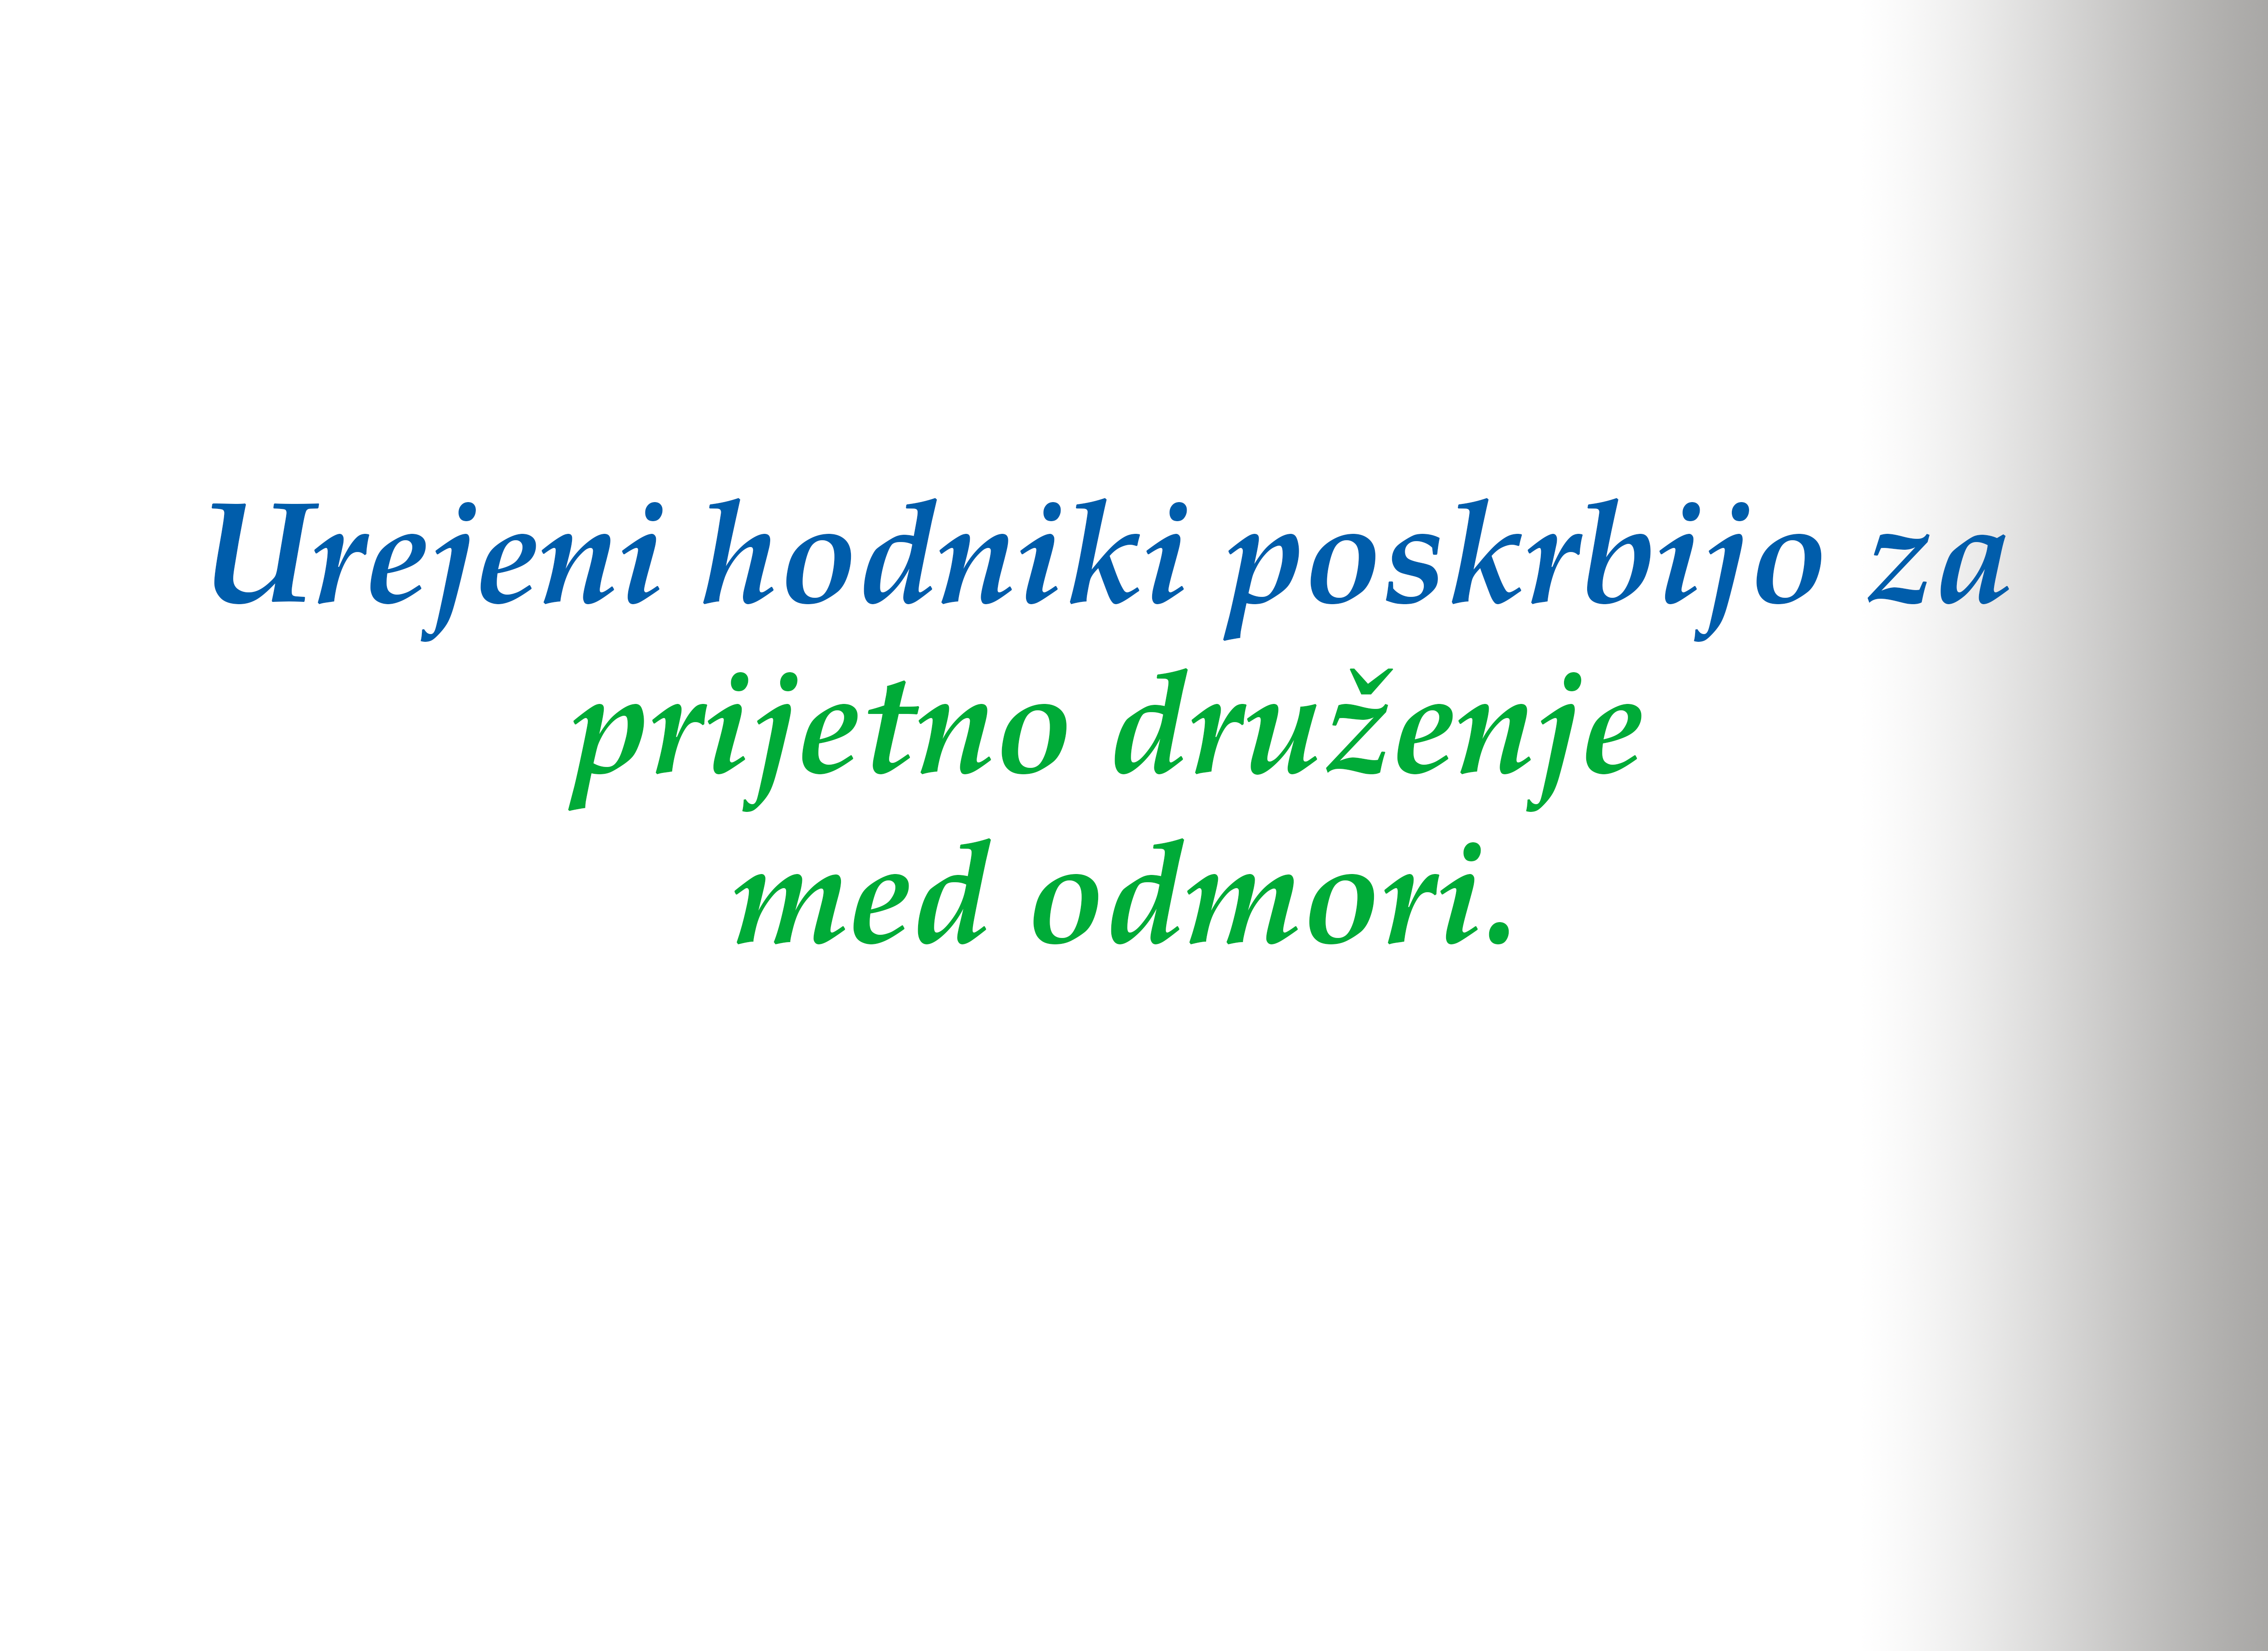 http://www.esnm.si/wp-content/uploads/2020/02/07_tekst.png